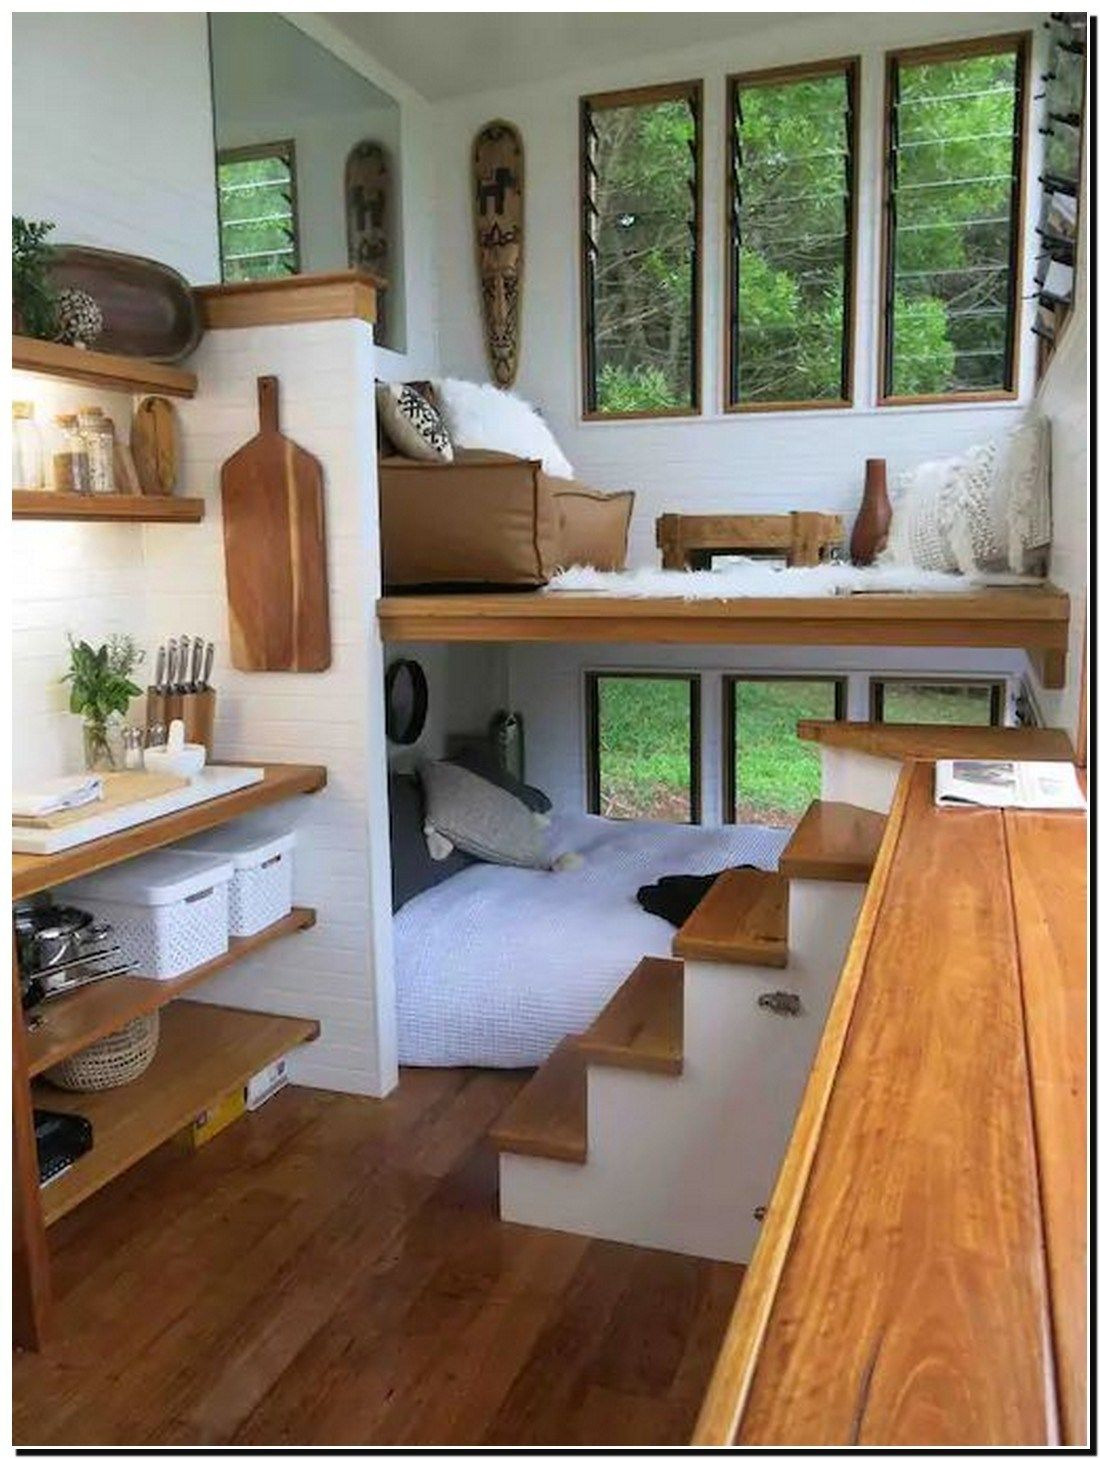 Cool House Design Ideas Lovely 57 Cool Tiny House Design Ideas to Inspire You 48